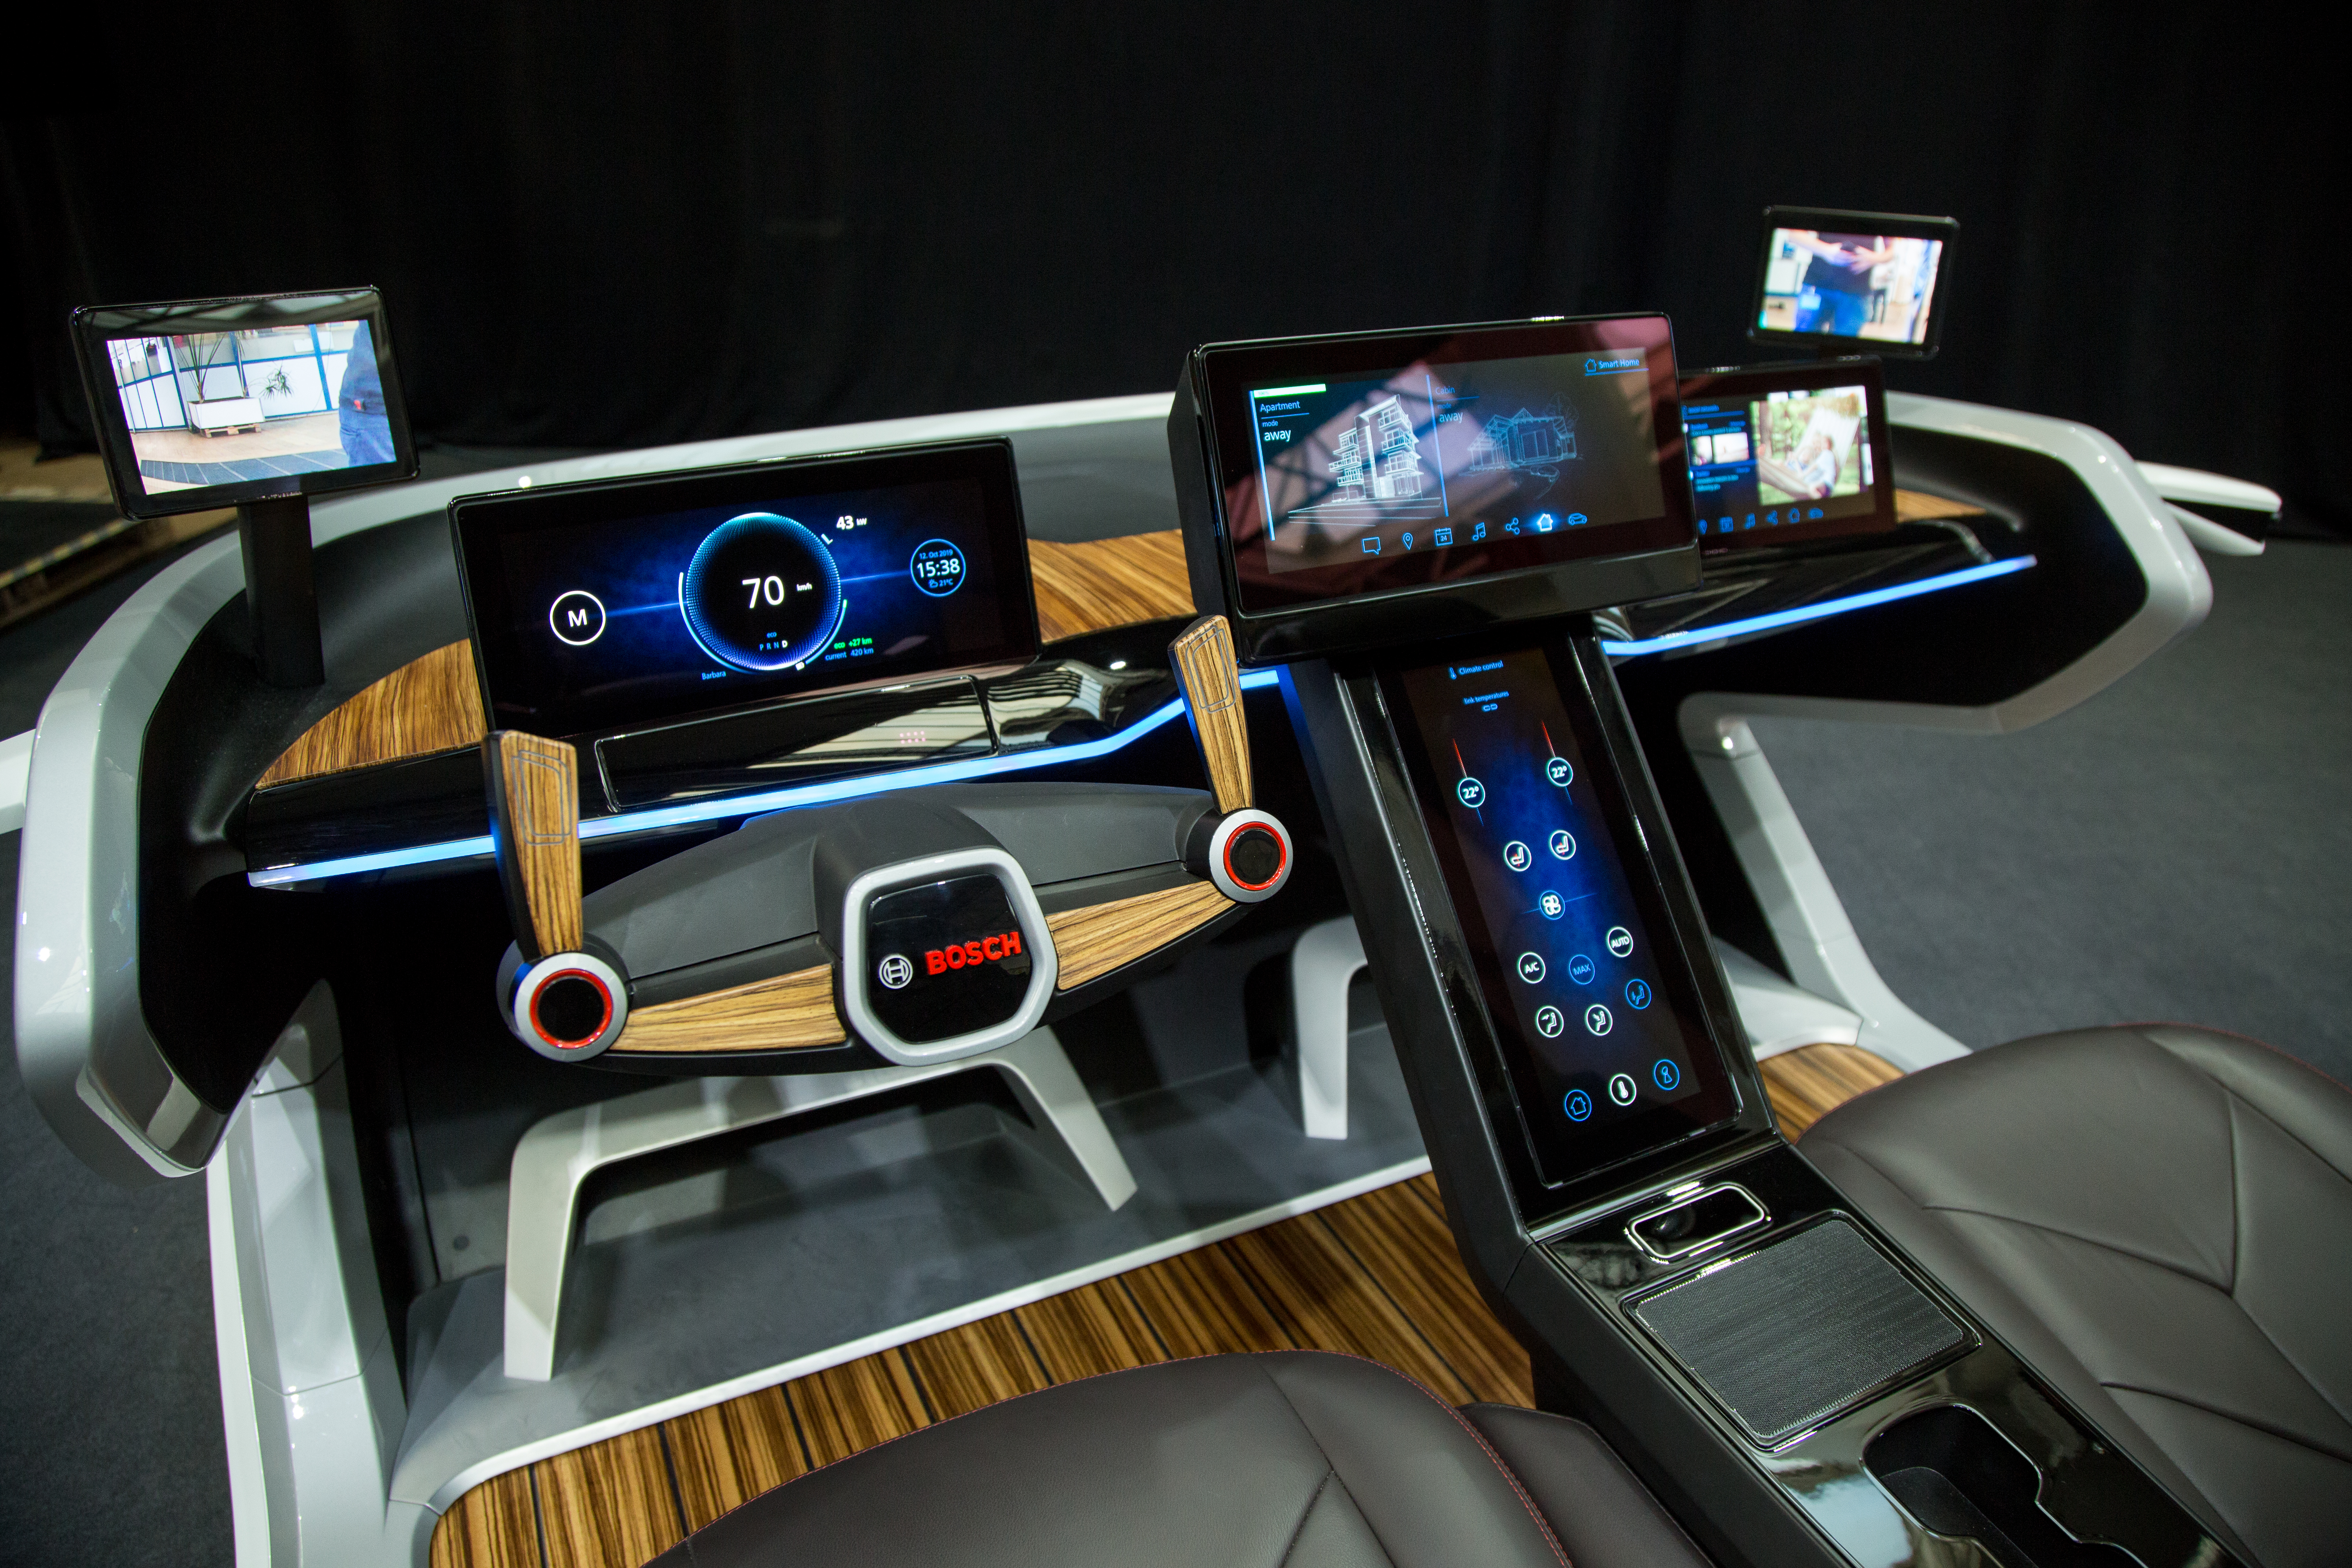 Cars are becoming smart assistants